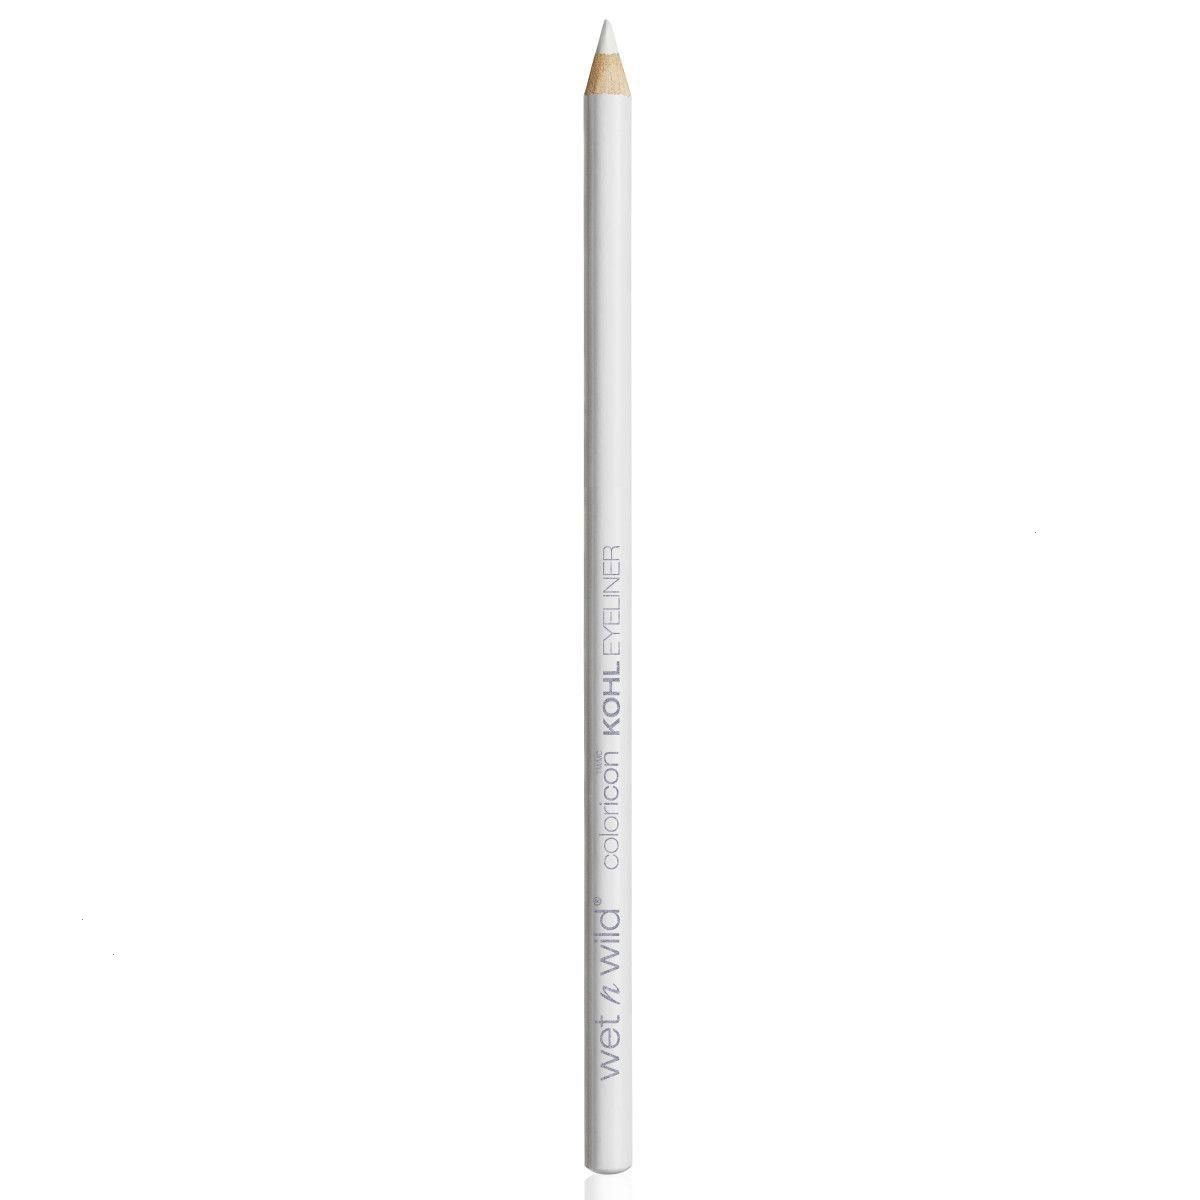 Makers Kohl Eyeliner - Ghosted This long-wearing liner has a rich, hyper-pigmented color, an oh-so-